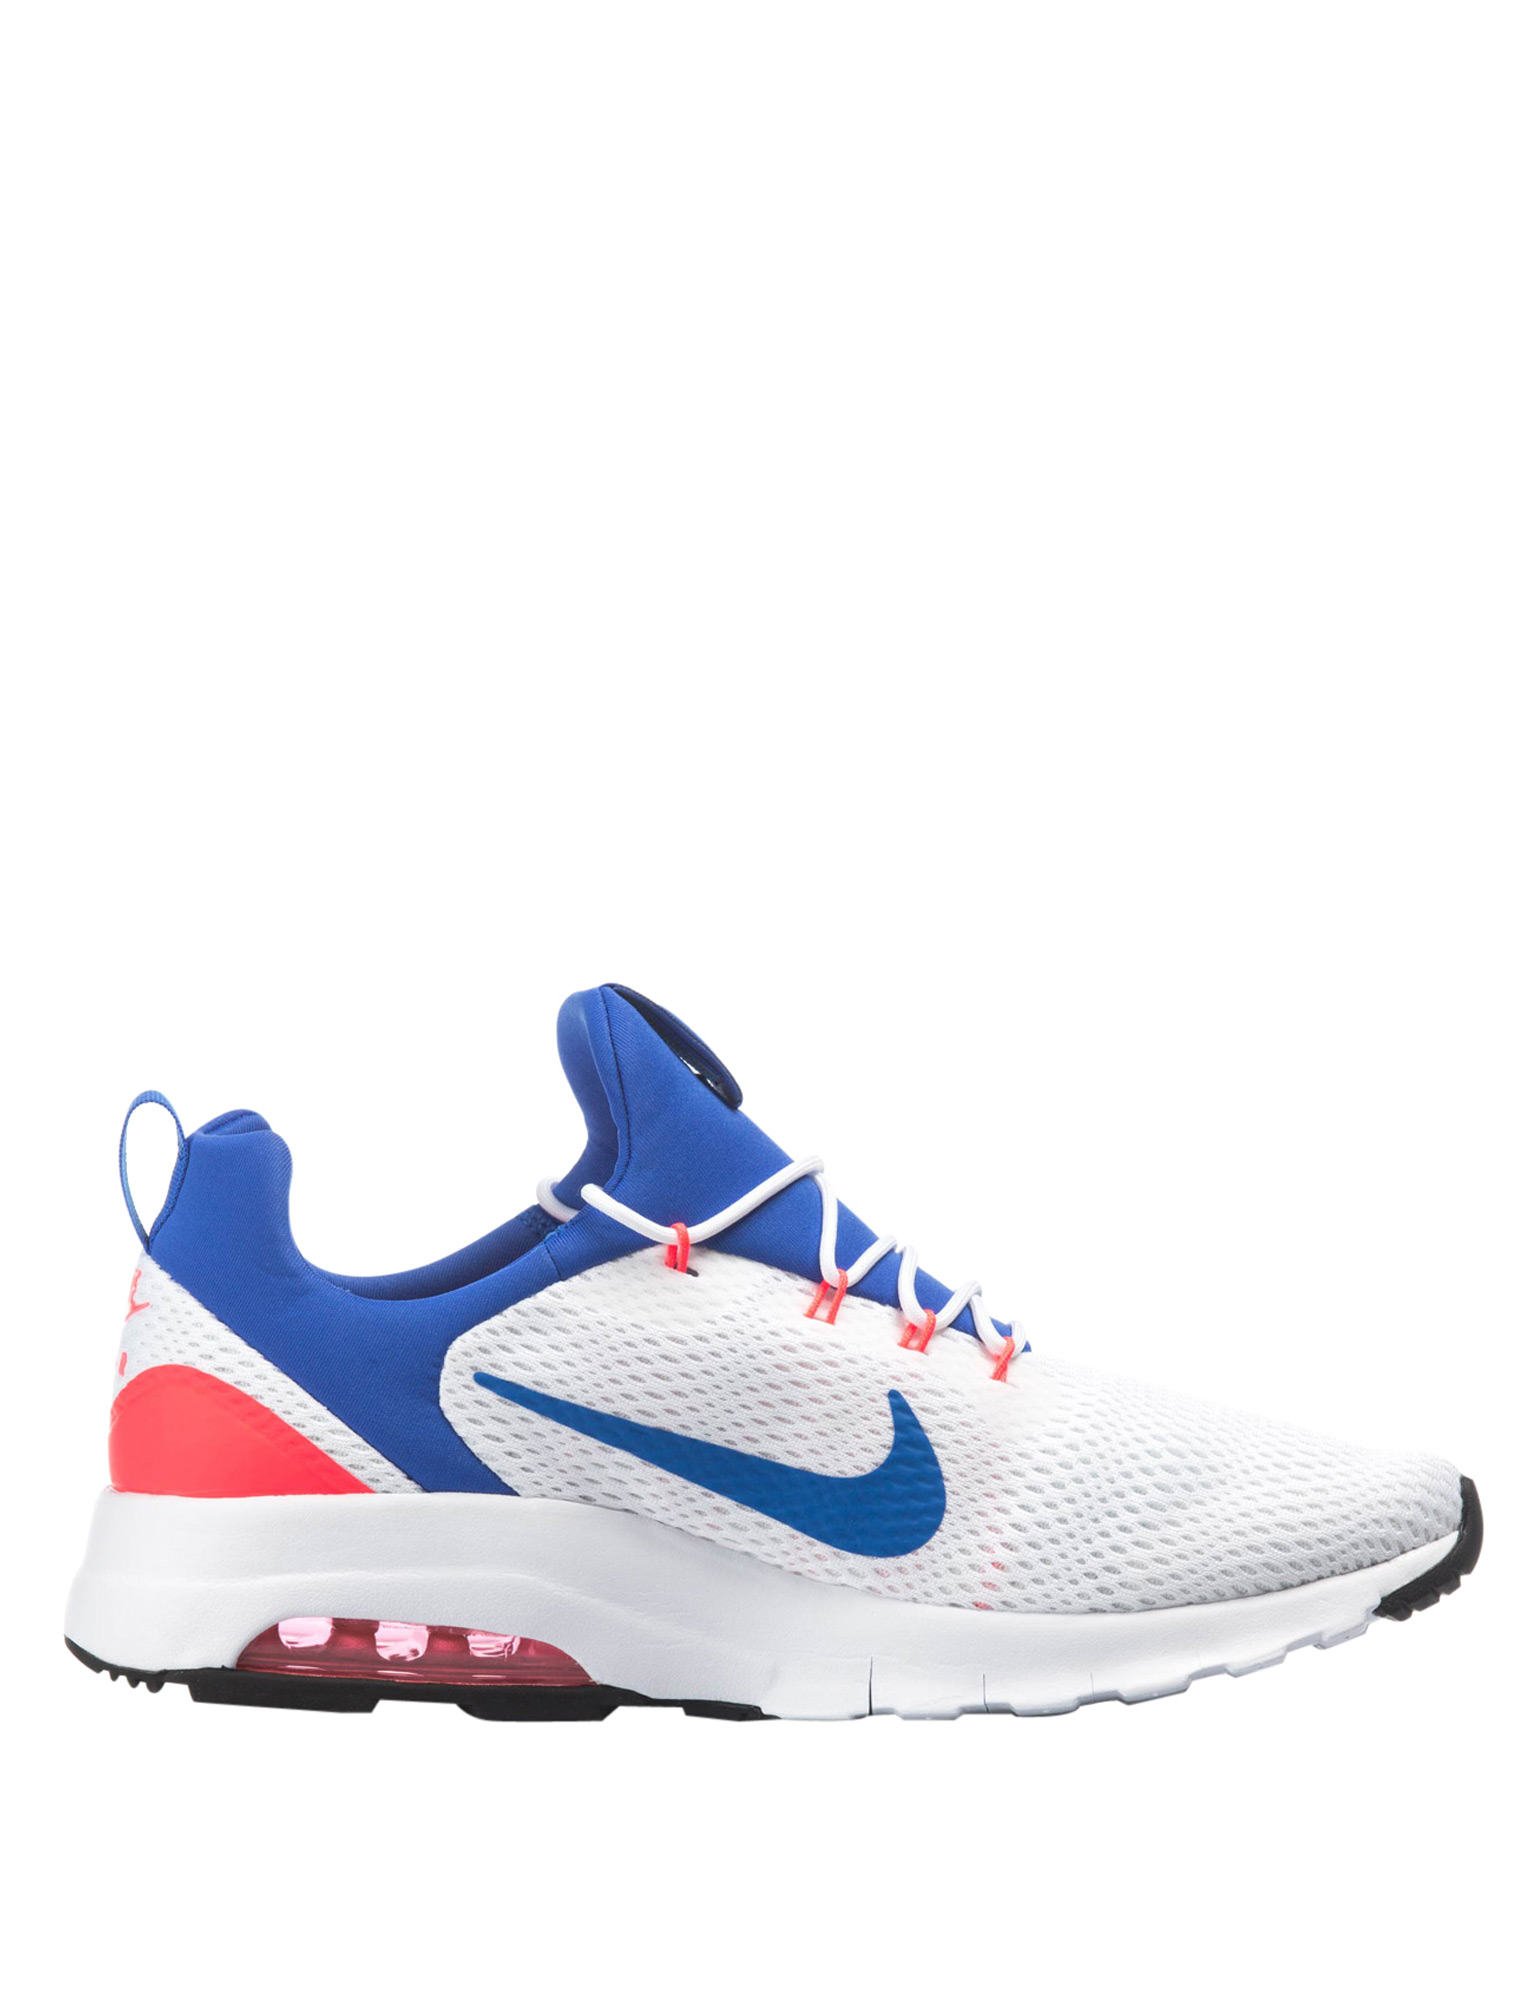 f26ae2a87c ... AIR MAX MOTION RACER MEN S WHITE-BLUE SNEAKERS. -40%. NIKE ...